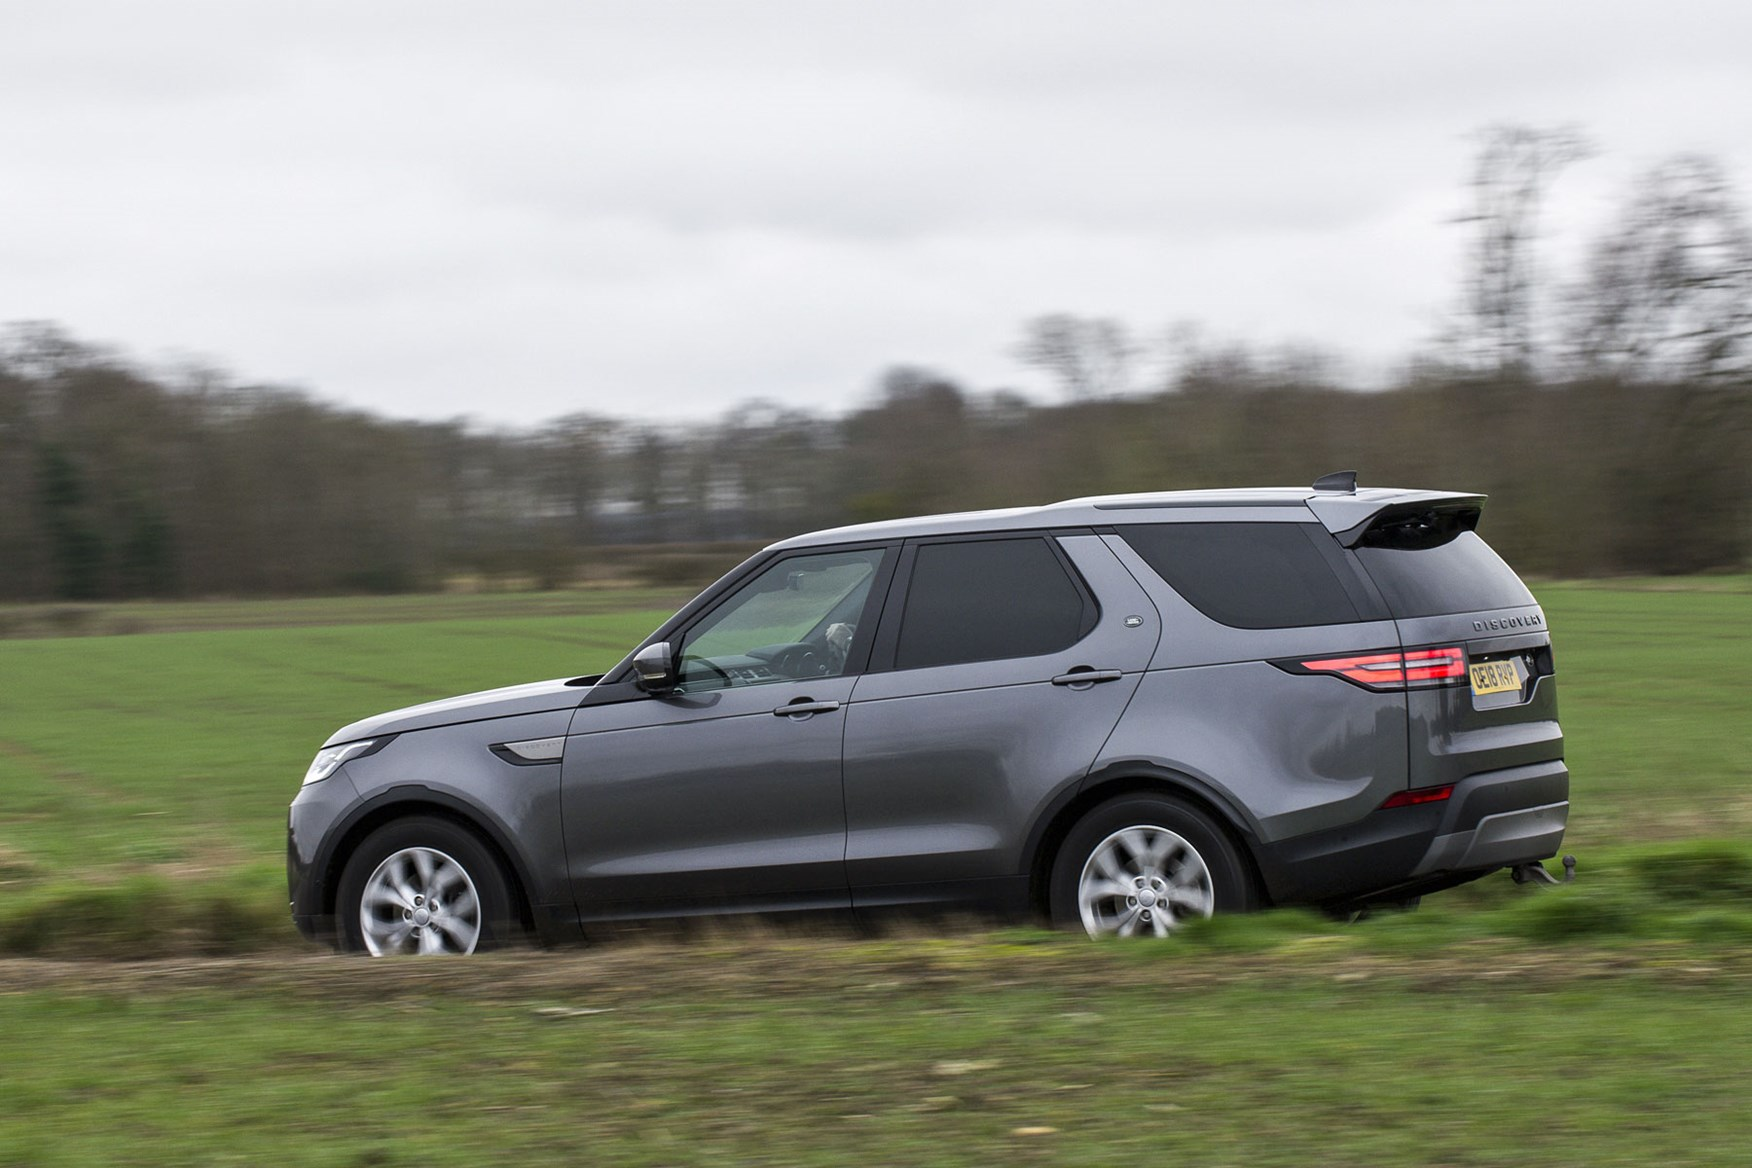 Land Rover Discovery Commercial review (2020), rear side view, driving